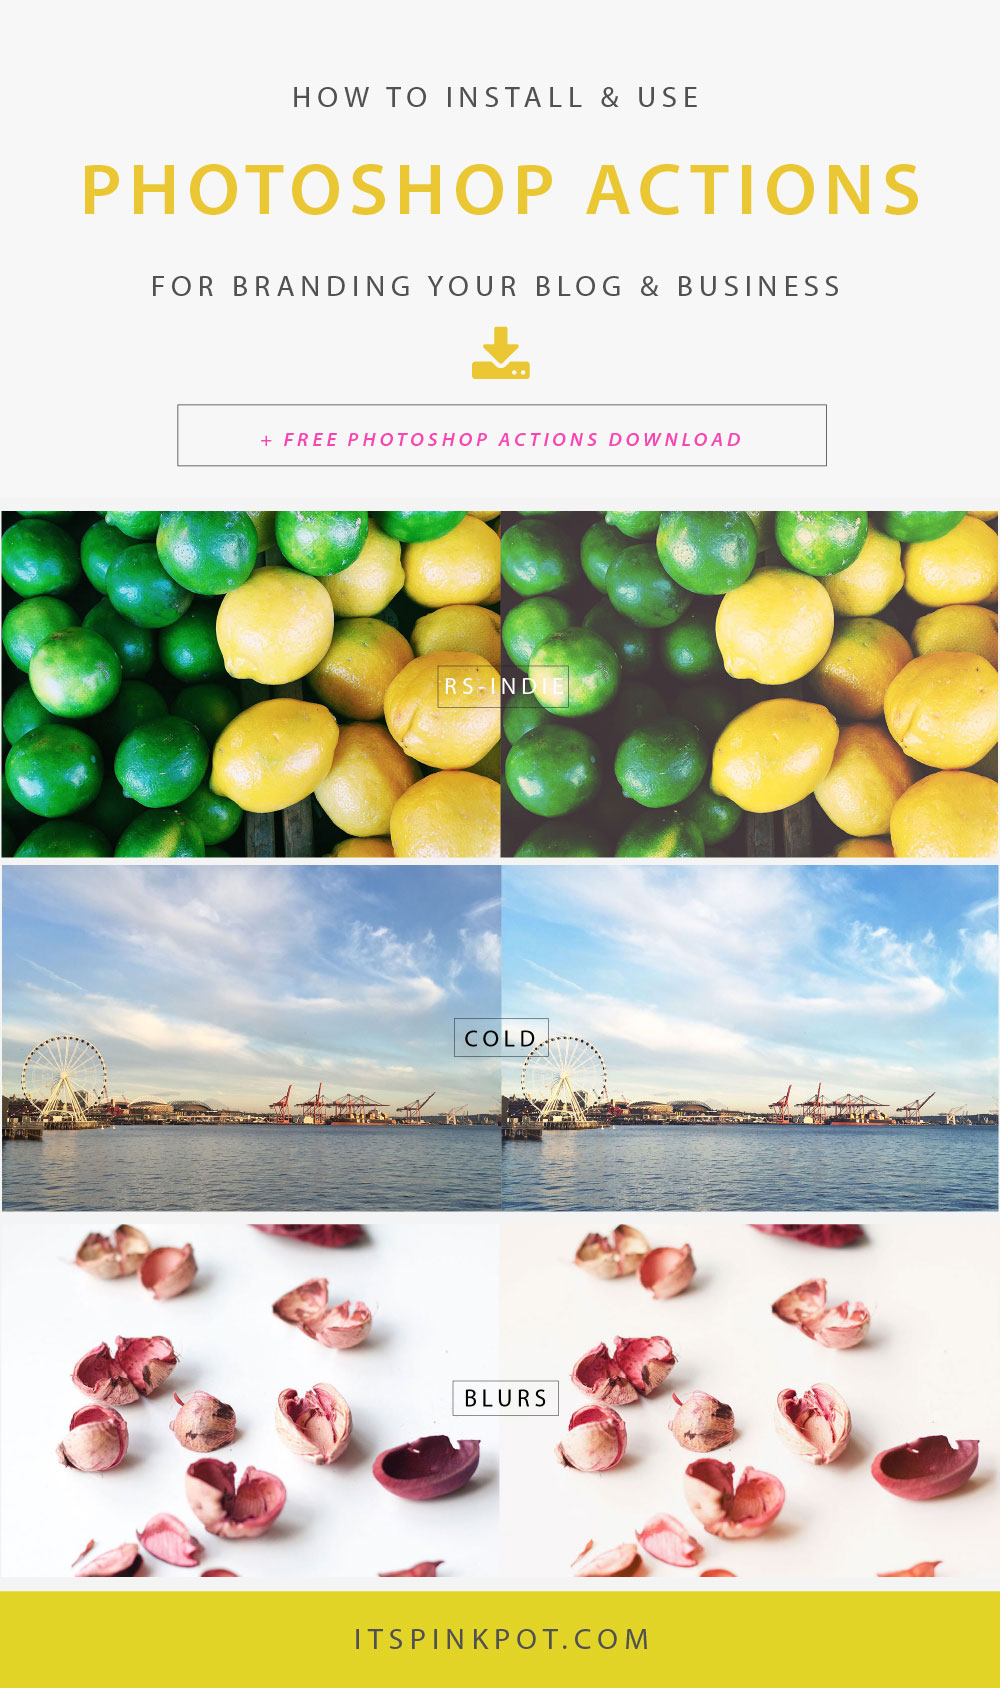 Curious about how to use photoshop actions for branding your blog & business? Here is a step by step tutorial to get you started with photoshop actions and also you can download a FREE set of professional actions from @filtergrade!